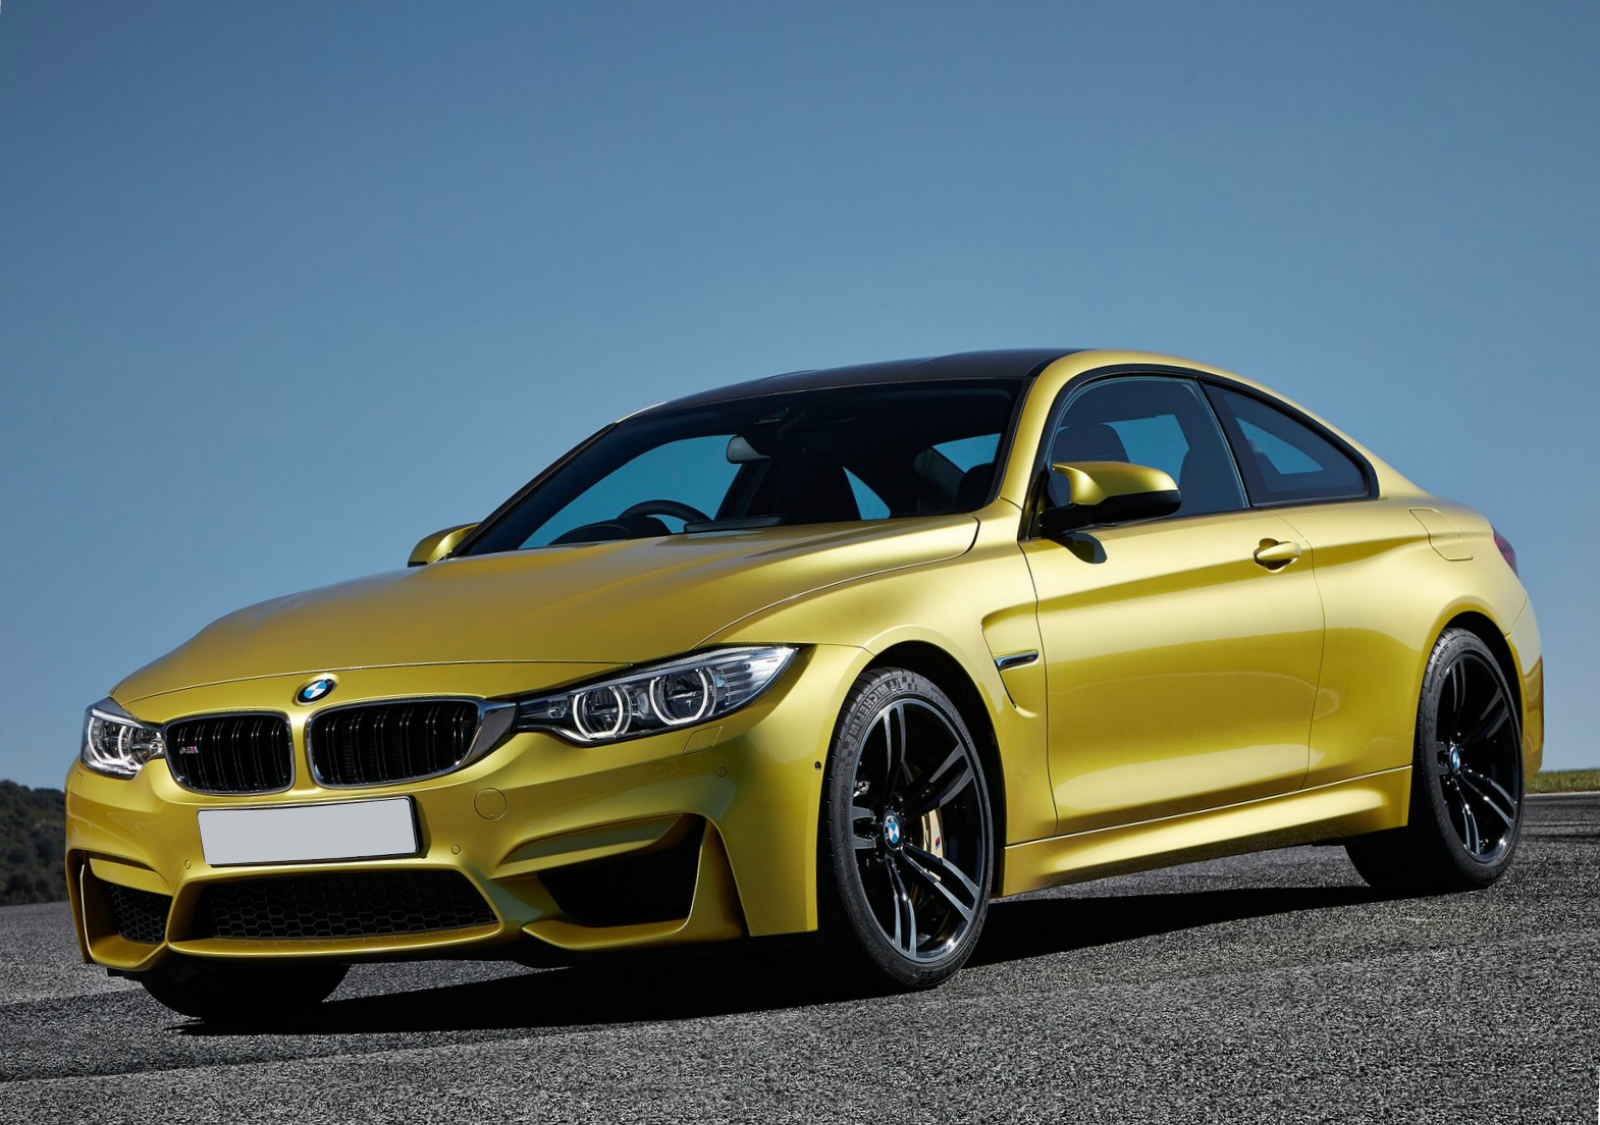 bmw m4 coupe reviews bmw m4 coupe car reviews. Black Bedroom Furniture Sets. Home Design Ideas